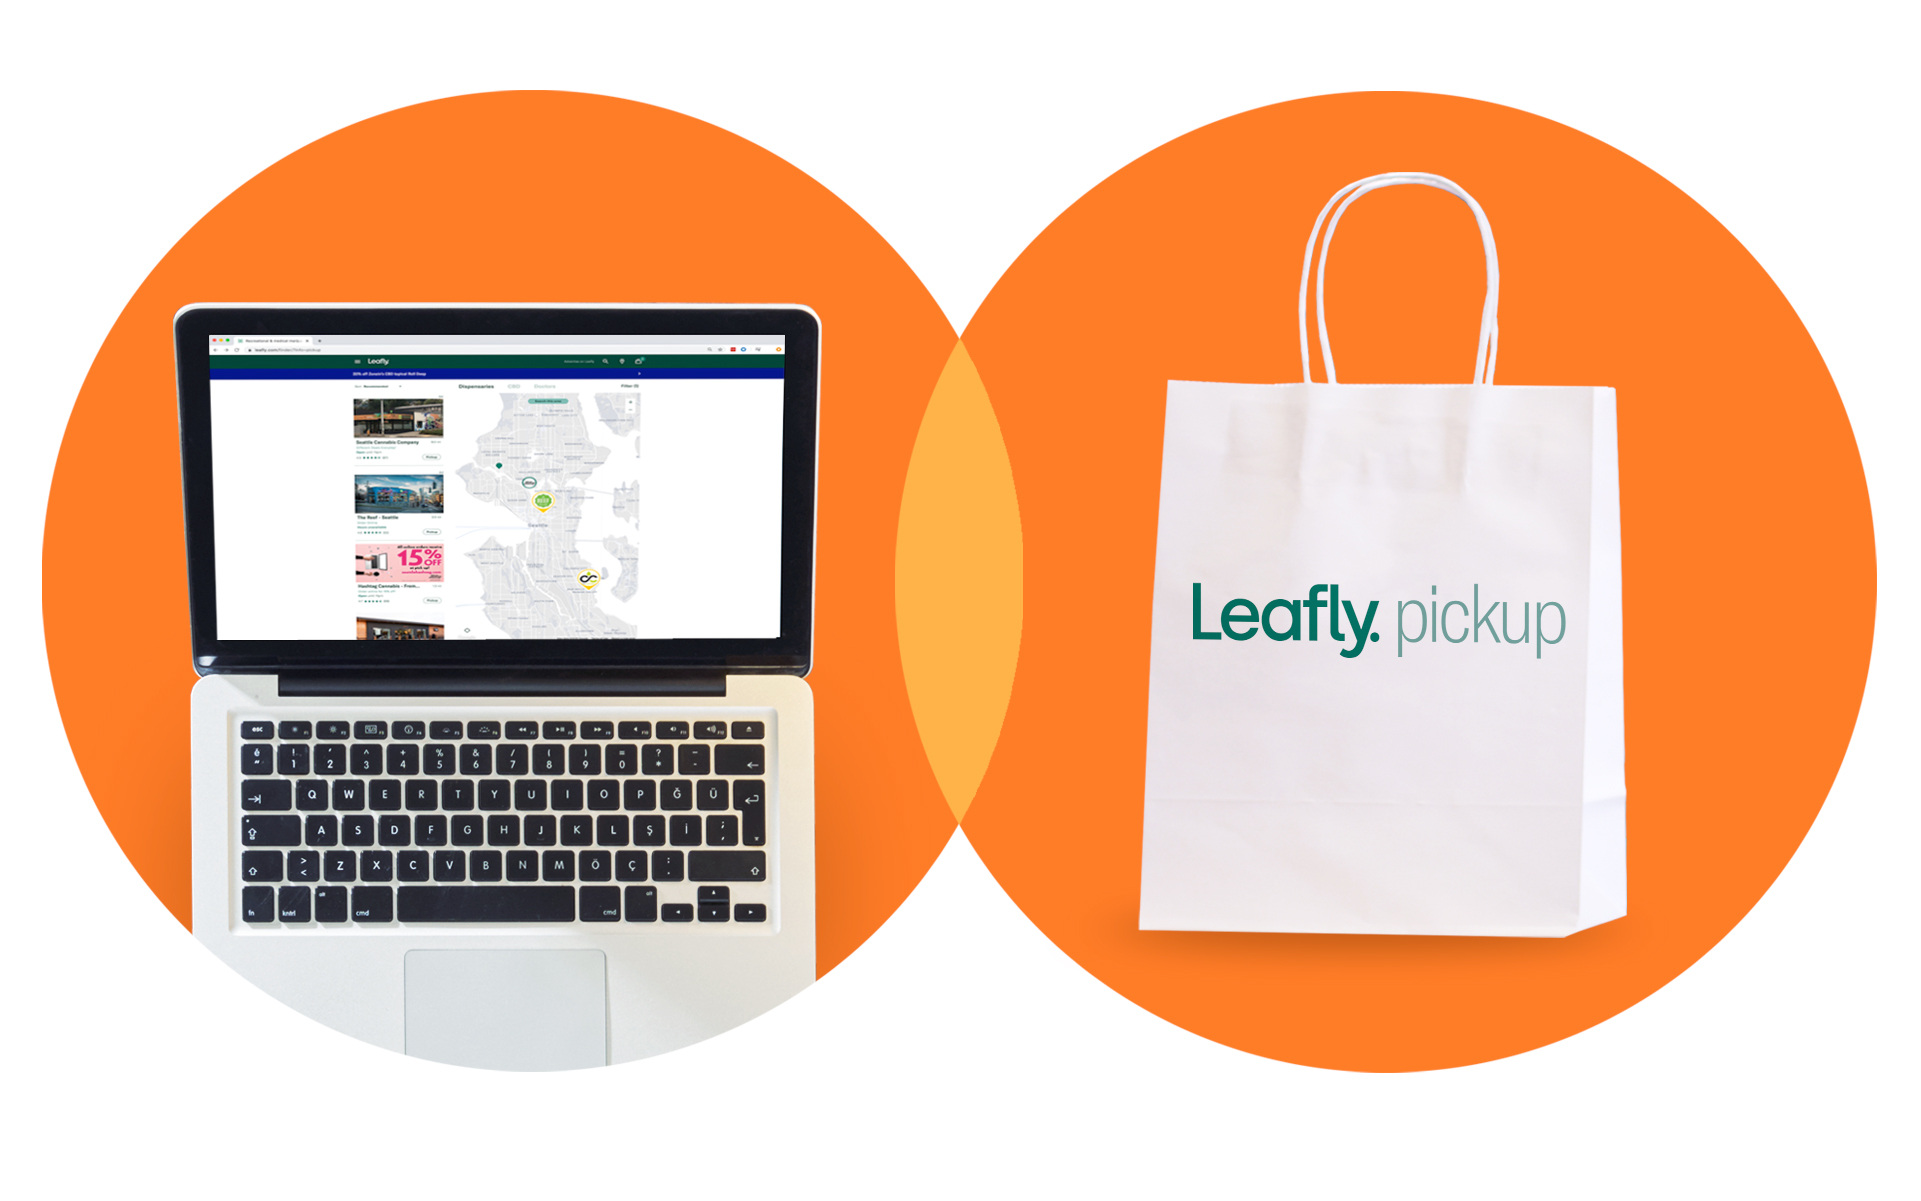 leafly-pickup-leafly-delivery